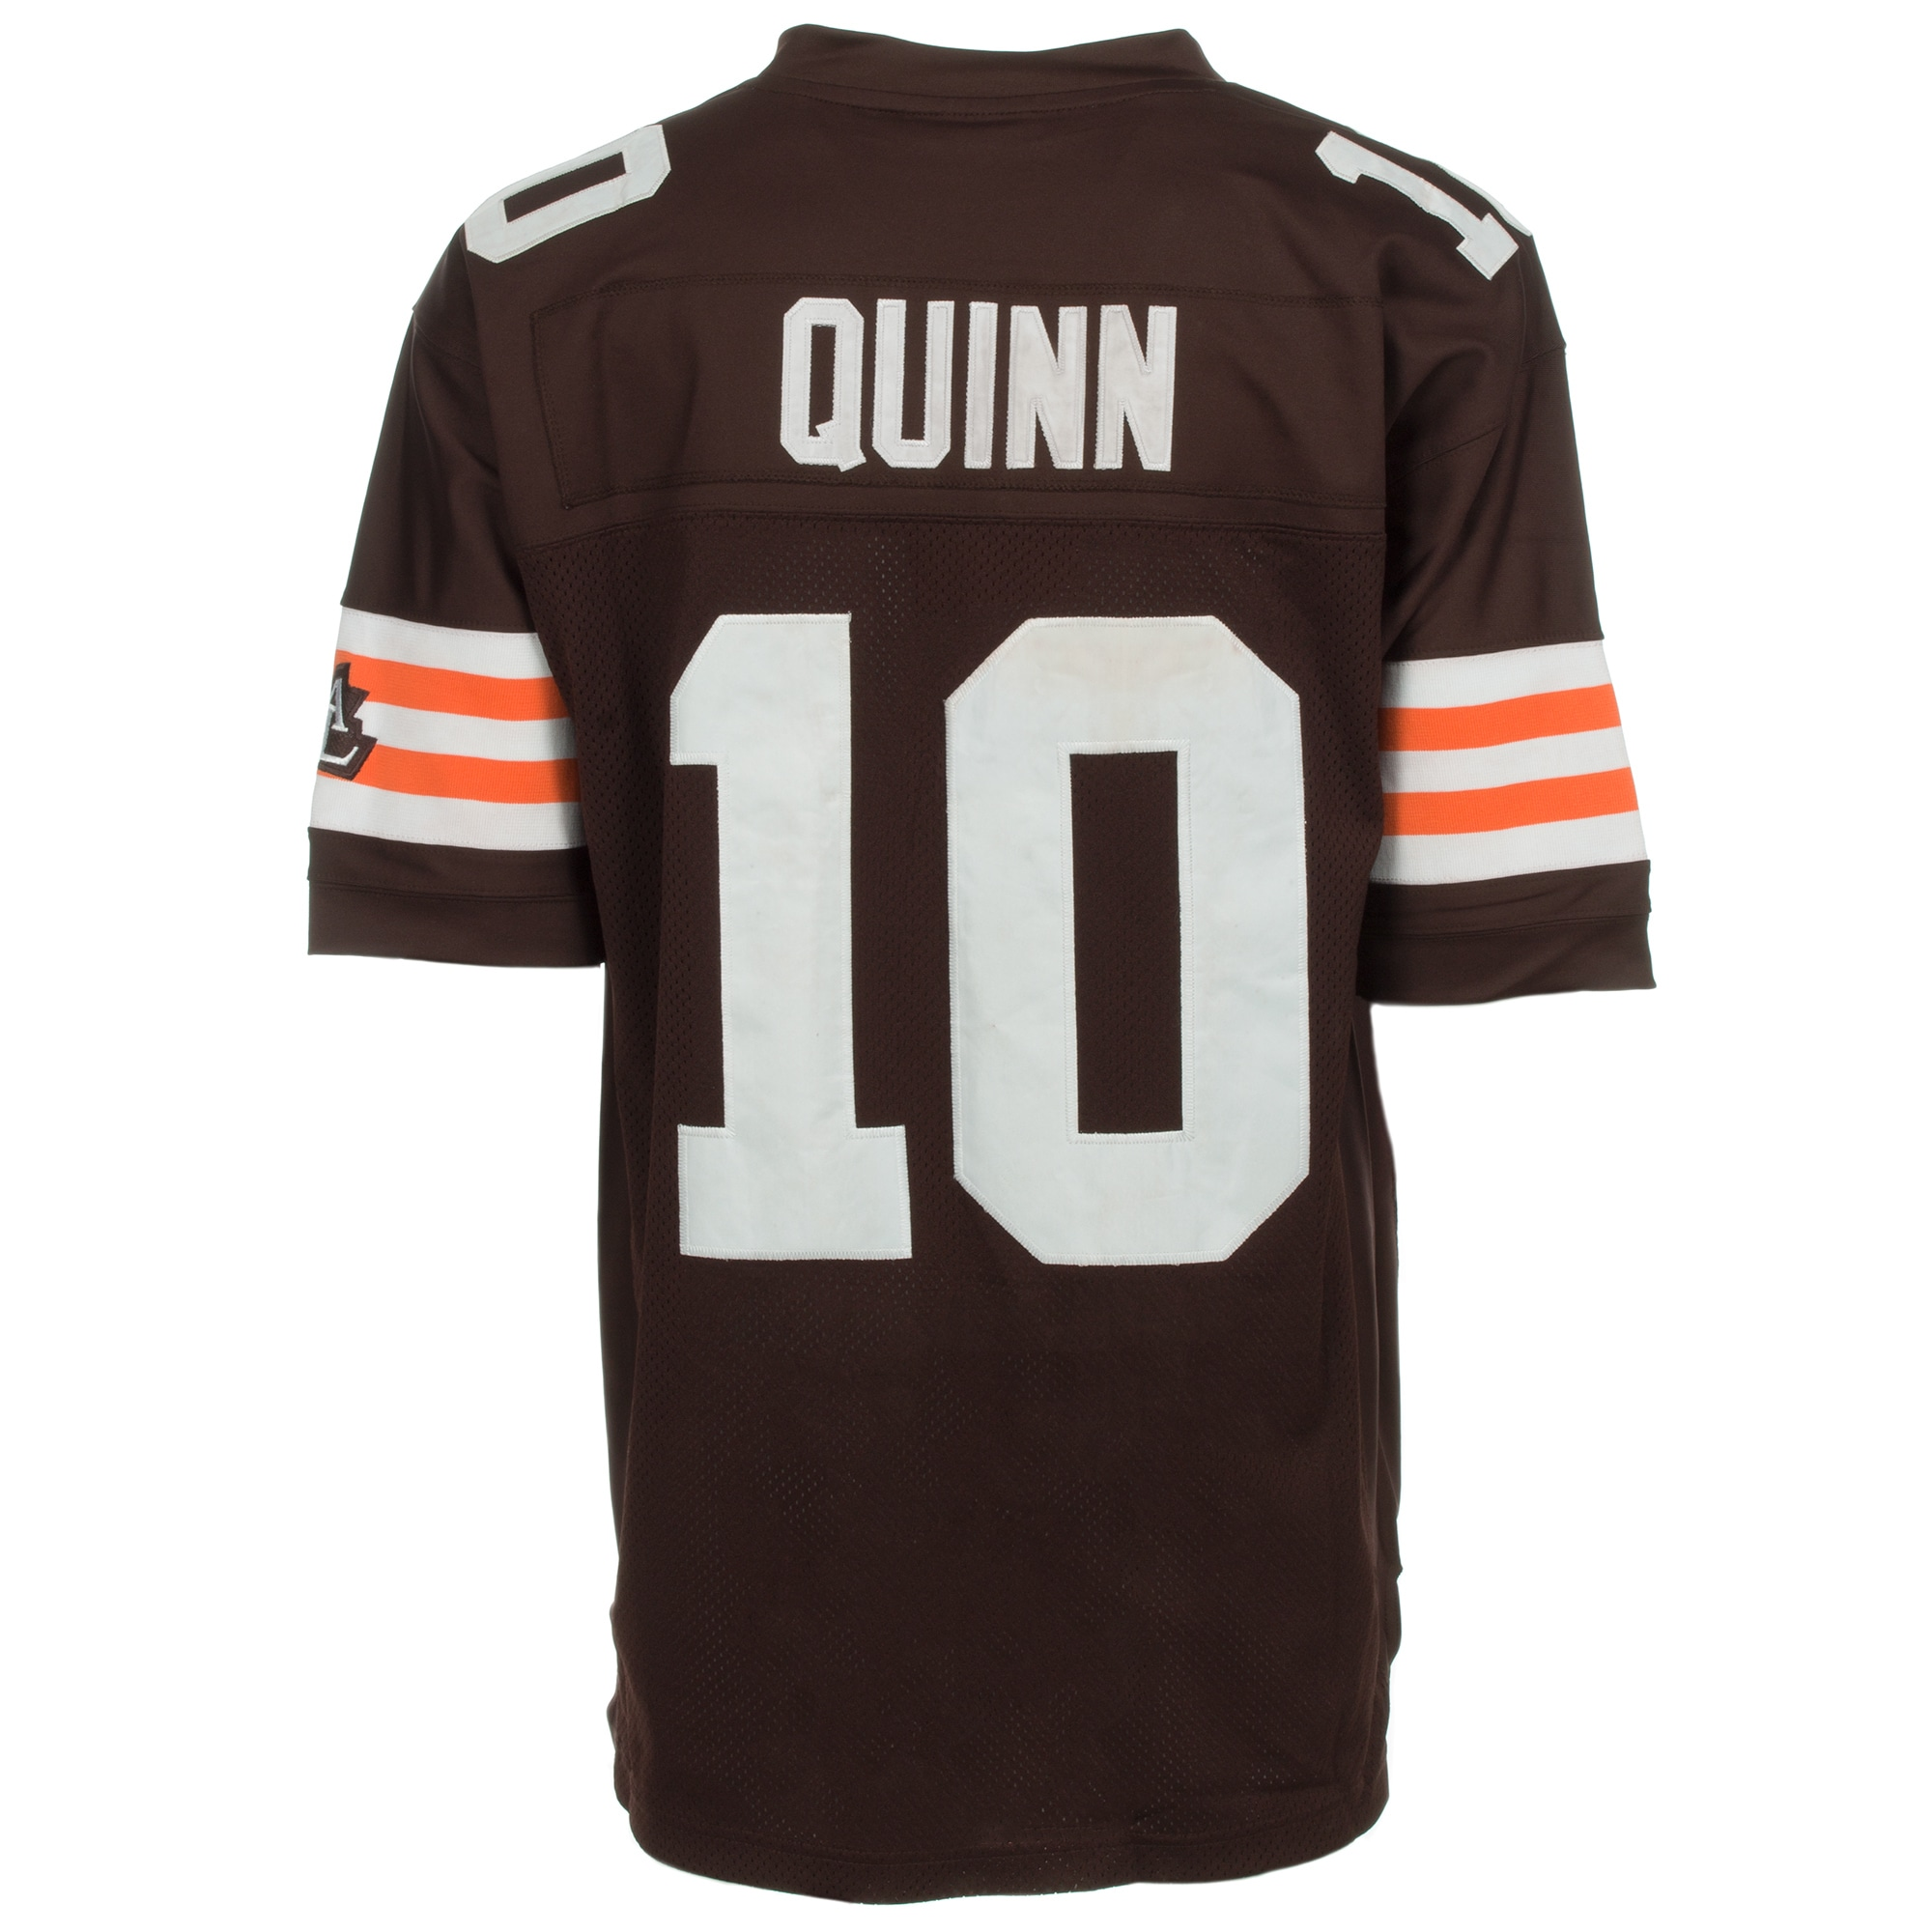 57c236eb4 ... wholesale shop brady quinn jersey 10 nfl cleveland browns mitchell ness  in brown as is item